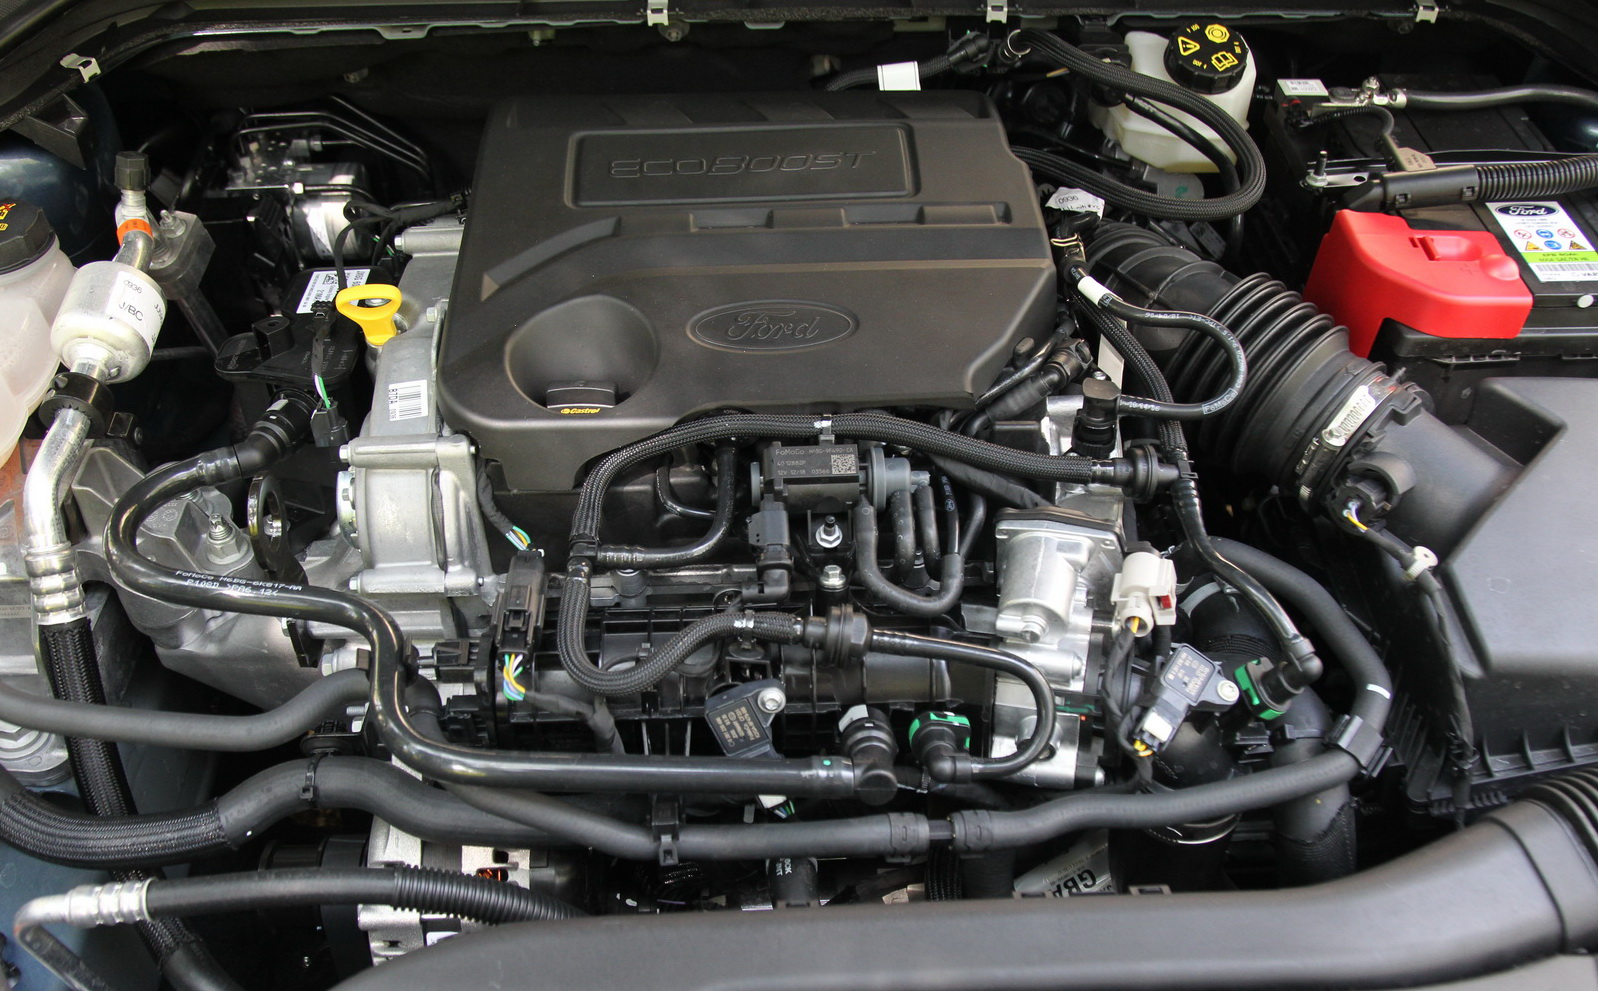 Ford Focus 2018 engine